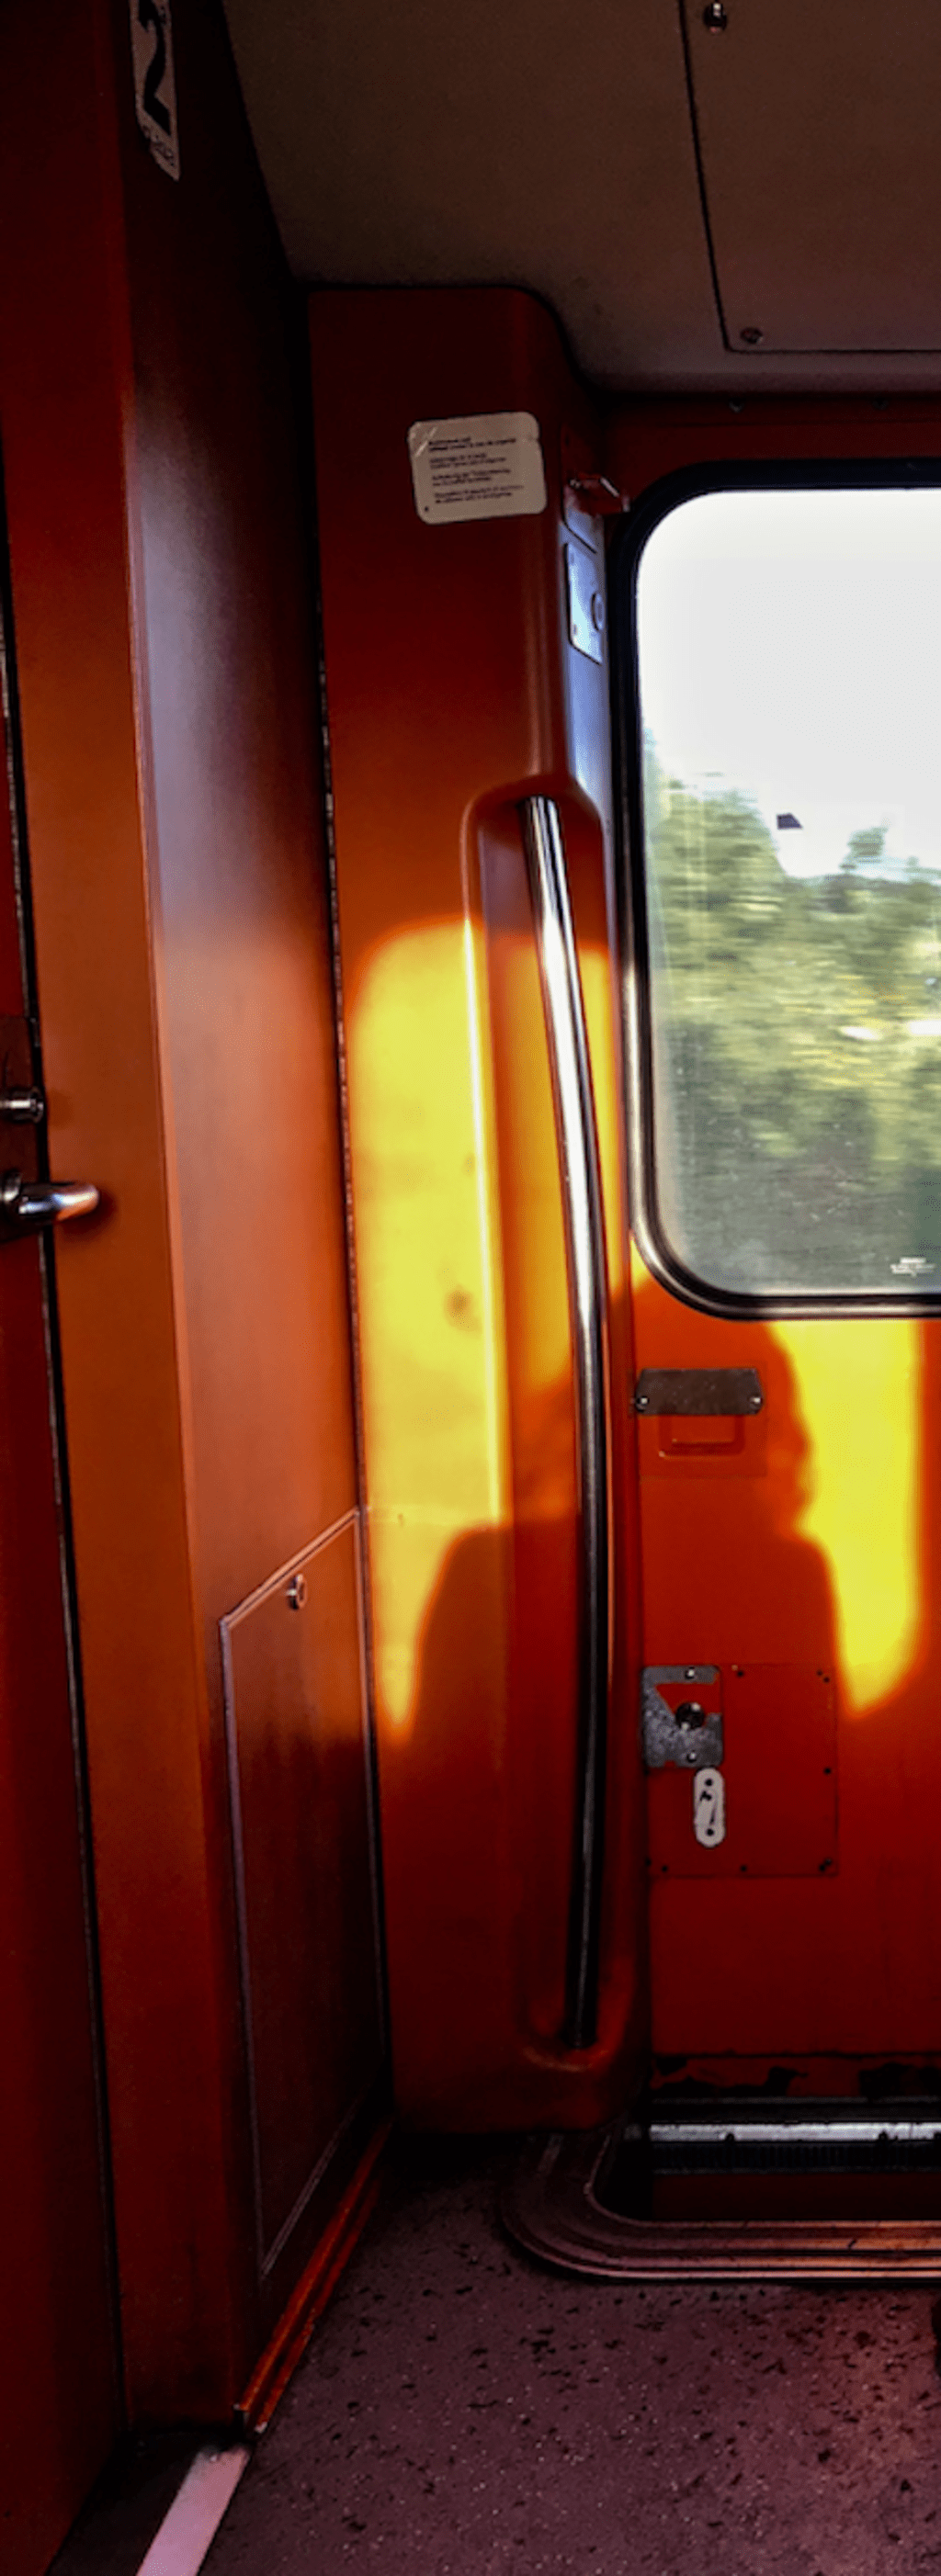 Burnt Orange Train